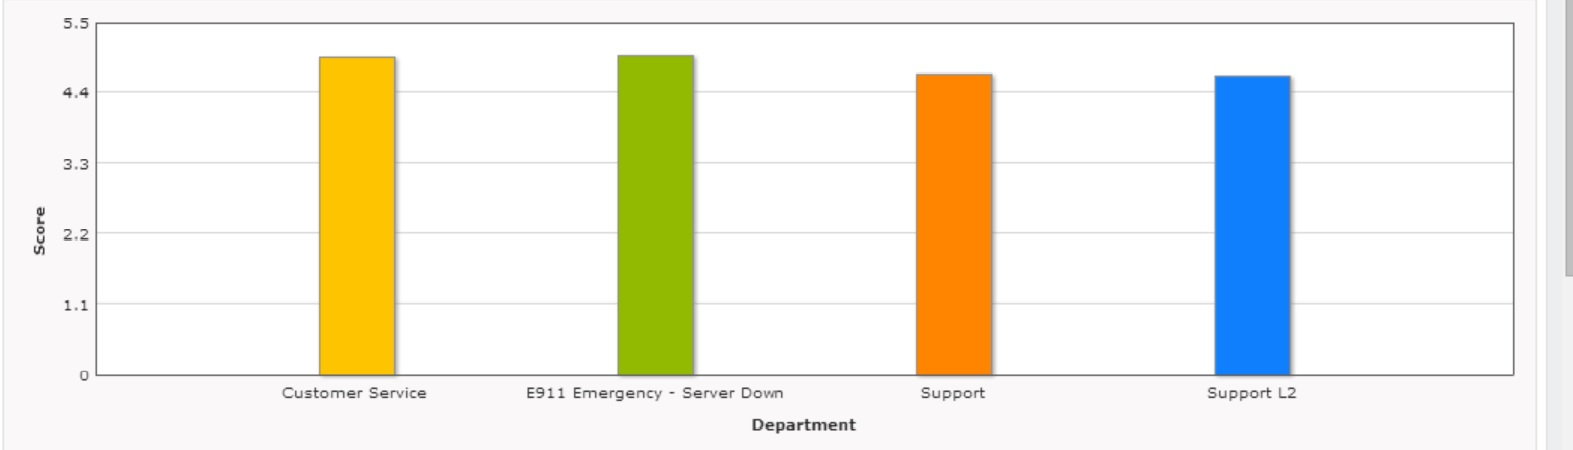 JaguarPC Has Exceptional Technical Support and Customer Service Ratings